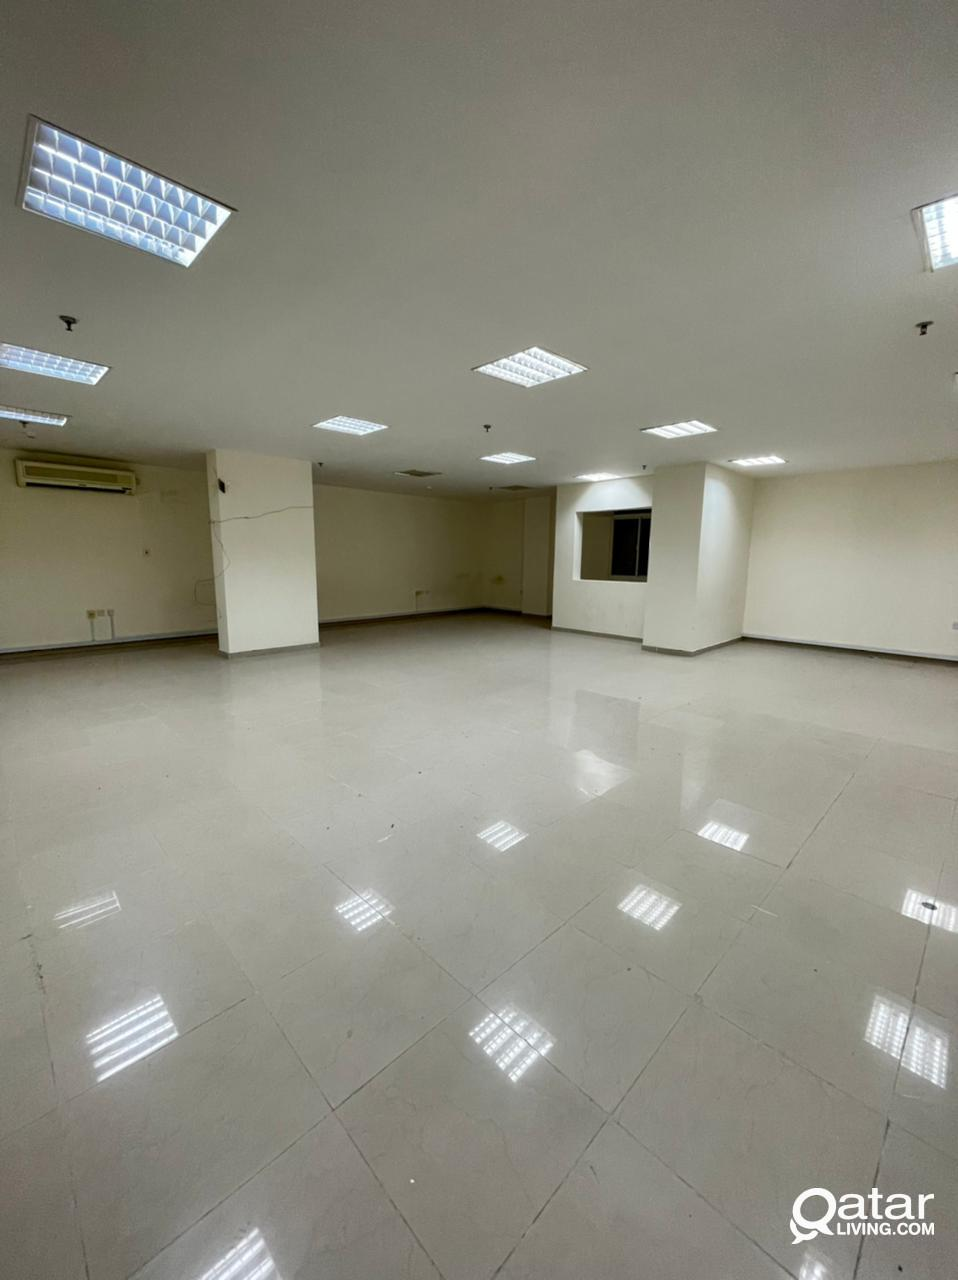 Special Offer!!Spacious office space available in